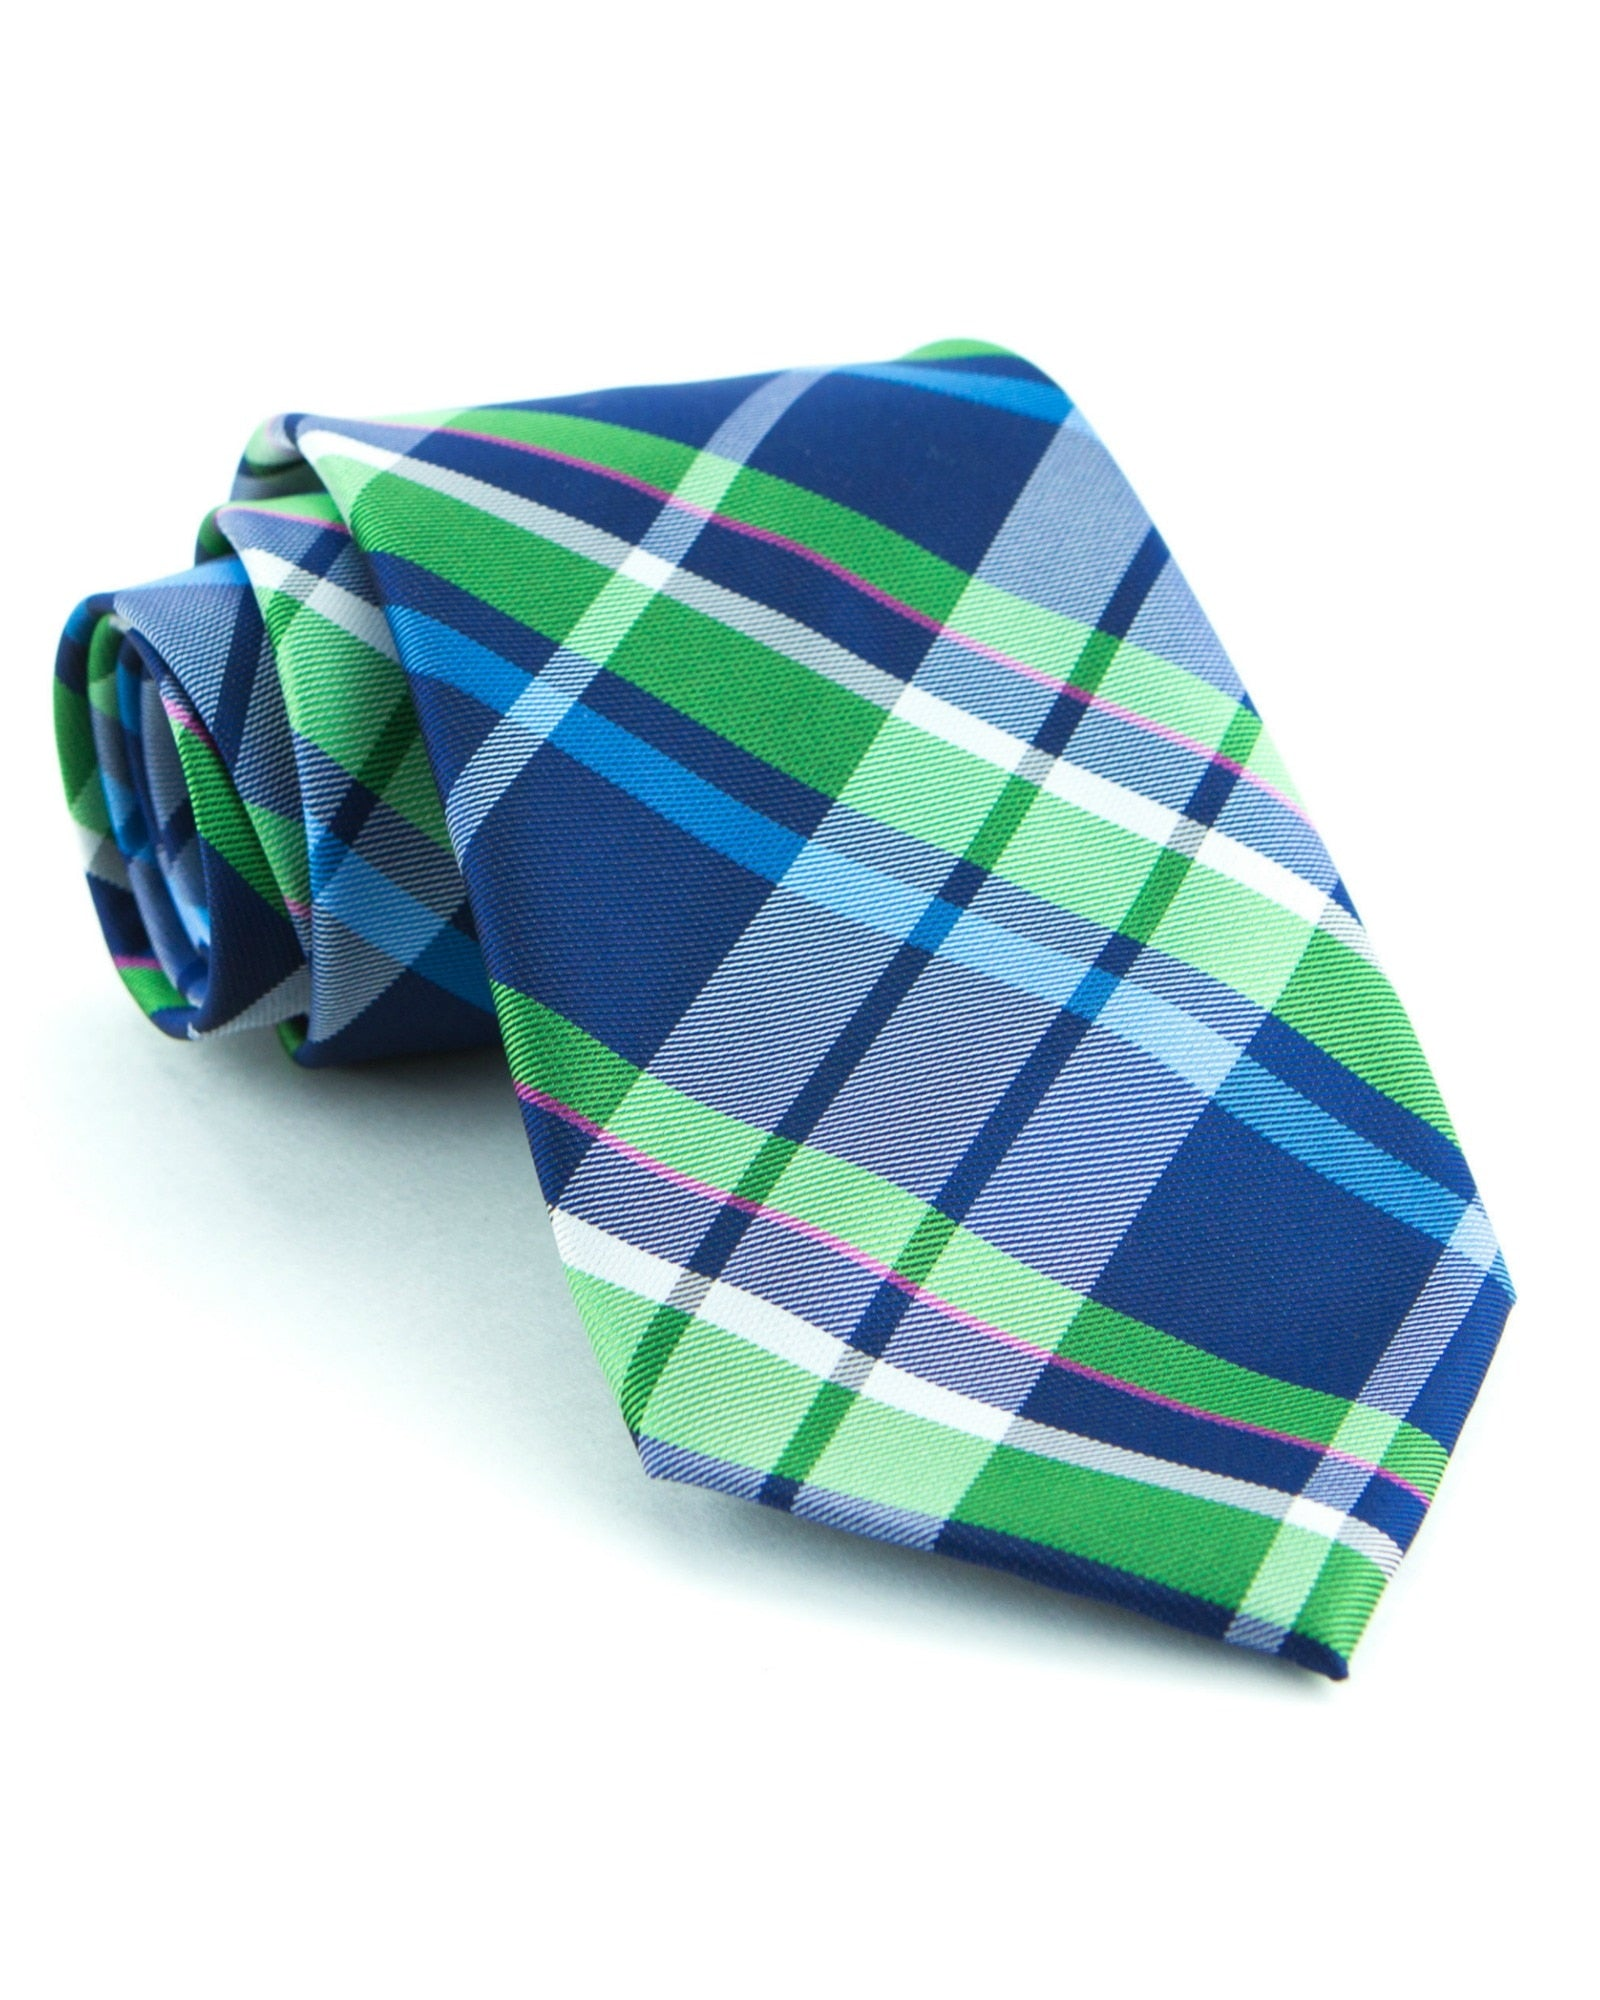 navy-and-green-plaid-dad-tie.jpg